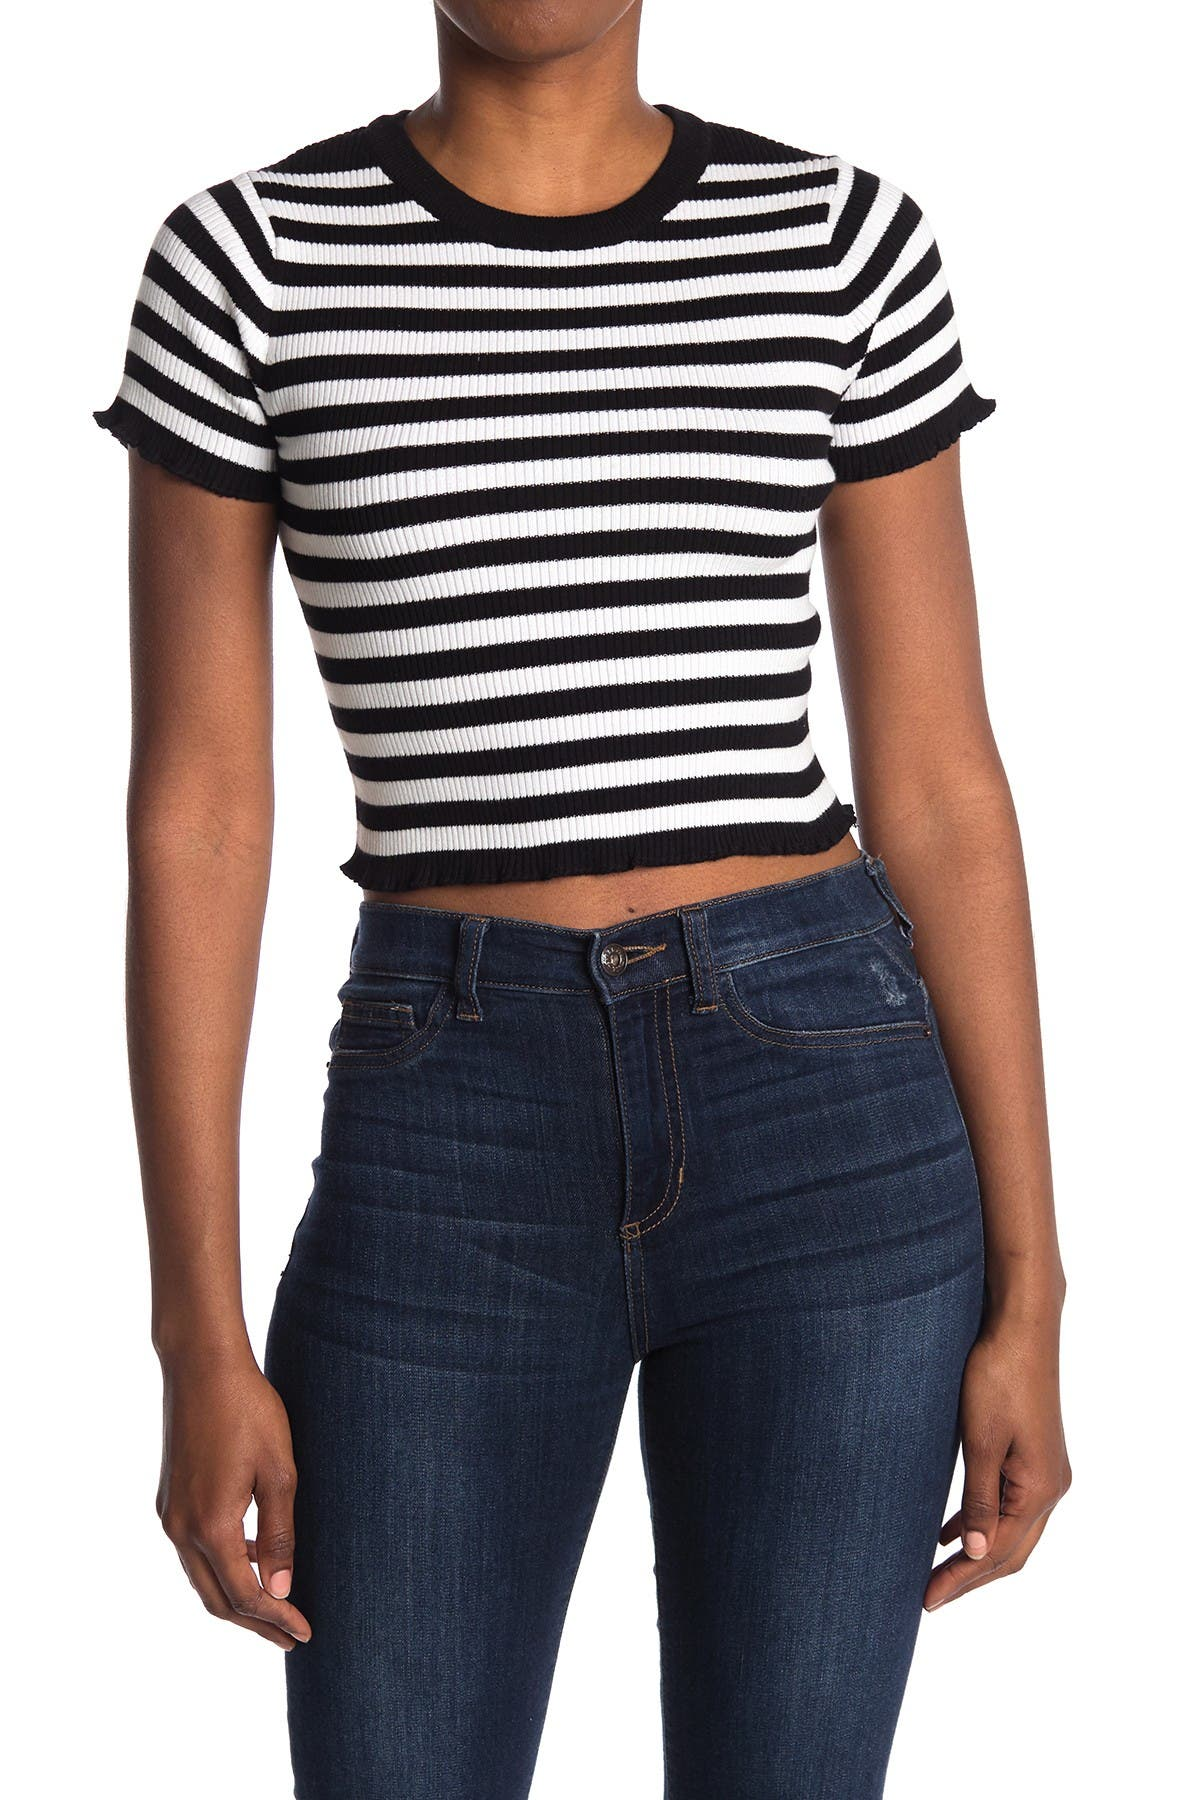 1930s Blouses, Tops, Shirt Styles | History Double Zero Striped Crop Sweater - Black Stripe at Nordstrom Rack $16.97 AT vintagedancer.com